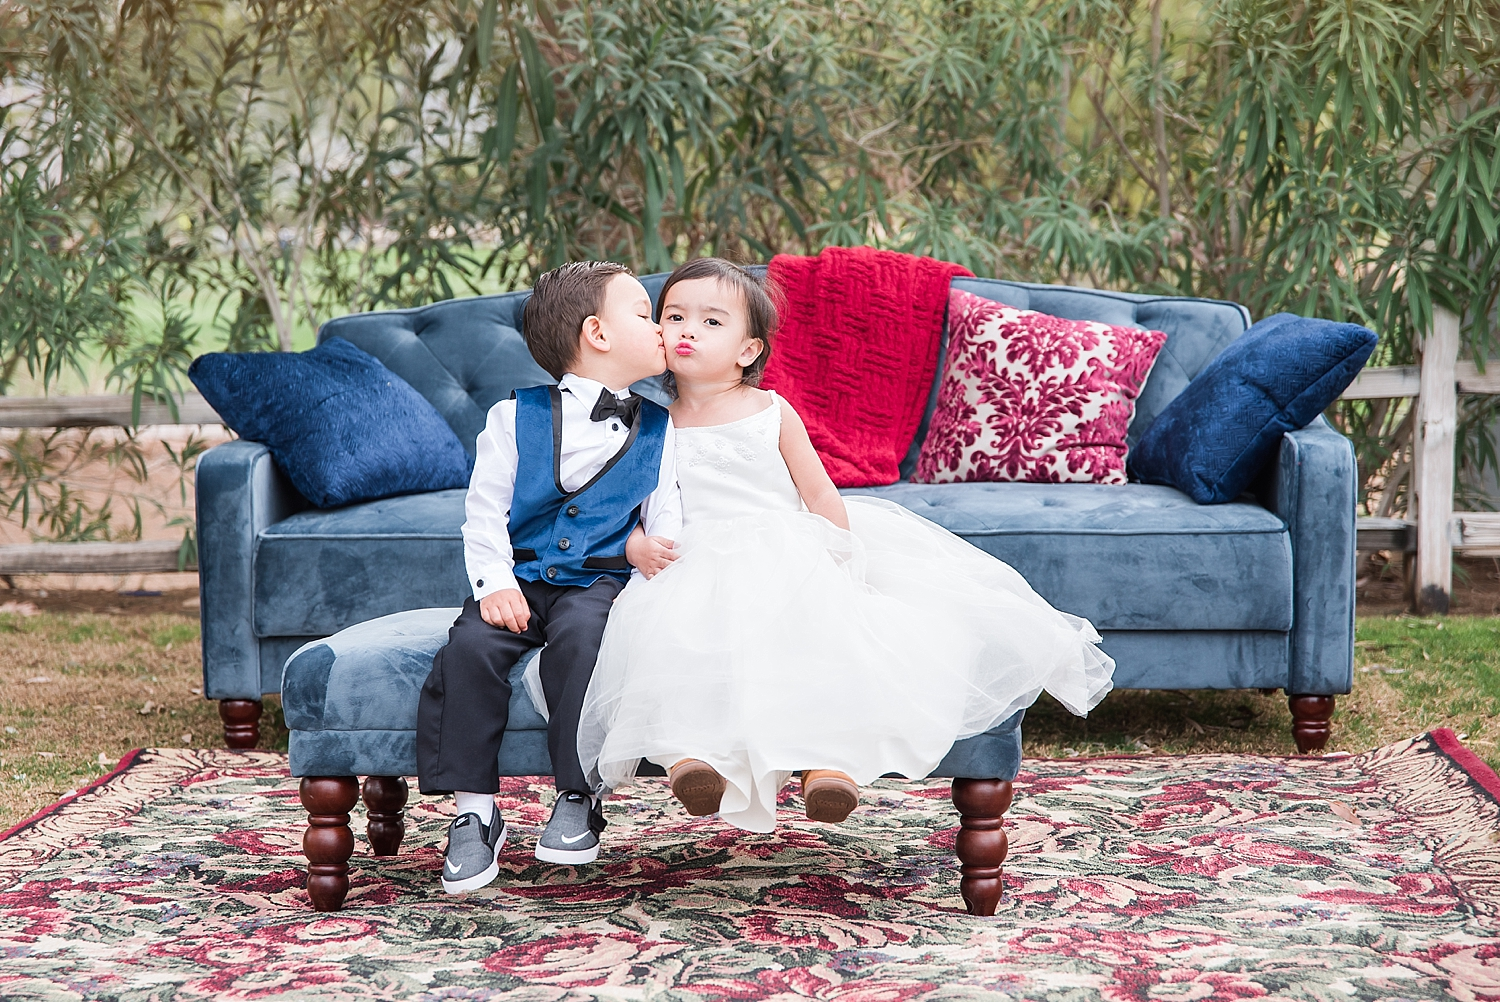 My nephew (Lincoln) and Tina's daughter (MacKenzie)...two of our youngest models! Aren't they just adorable? MacKenzie has perfected the duck lips!